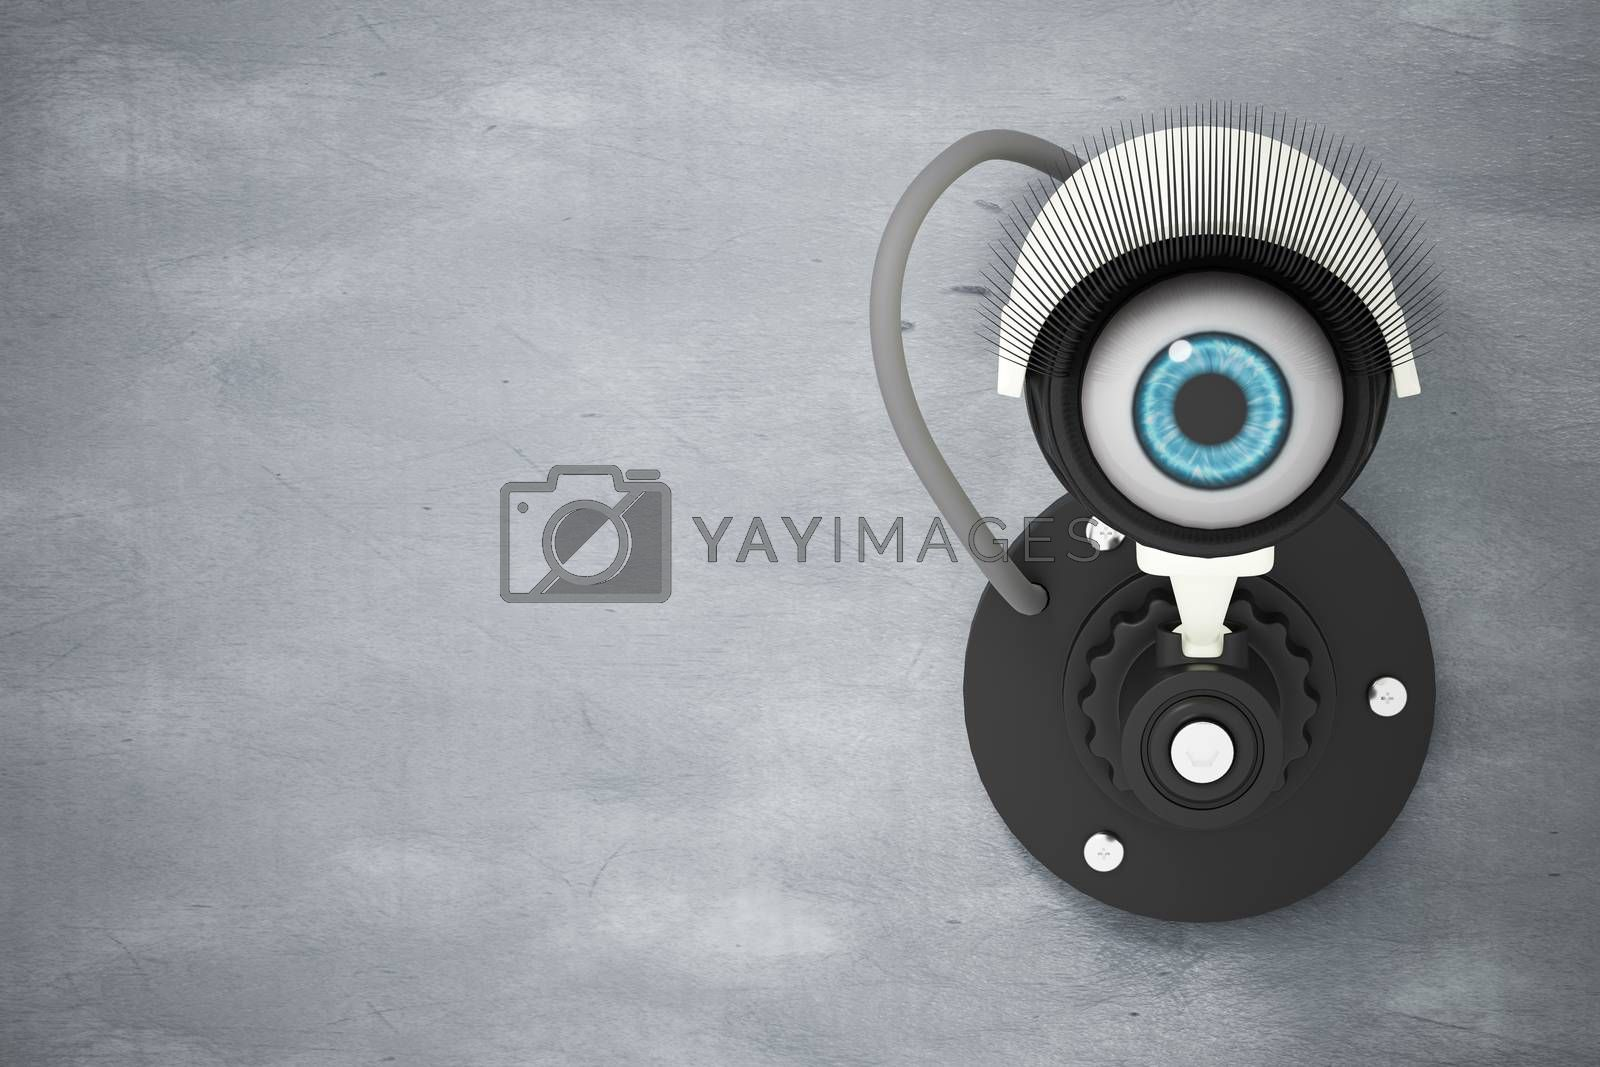 The white CCTV system installed on the cement wall with the eyes instead of the camera lens. The concept of security surveillance is like watching it all the time. 3D illustration rendering.